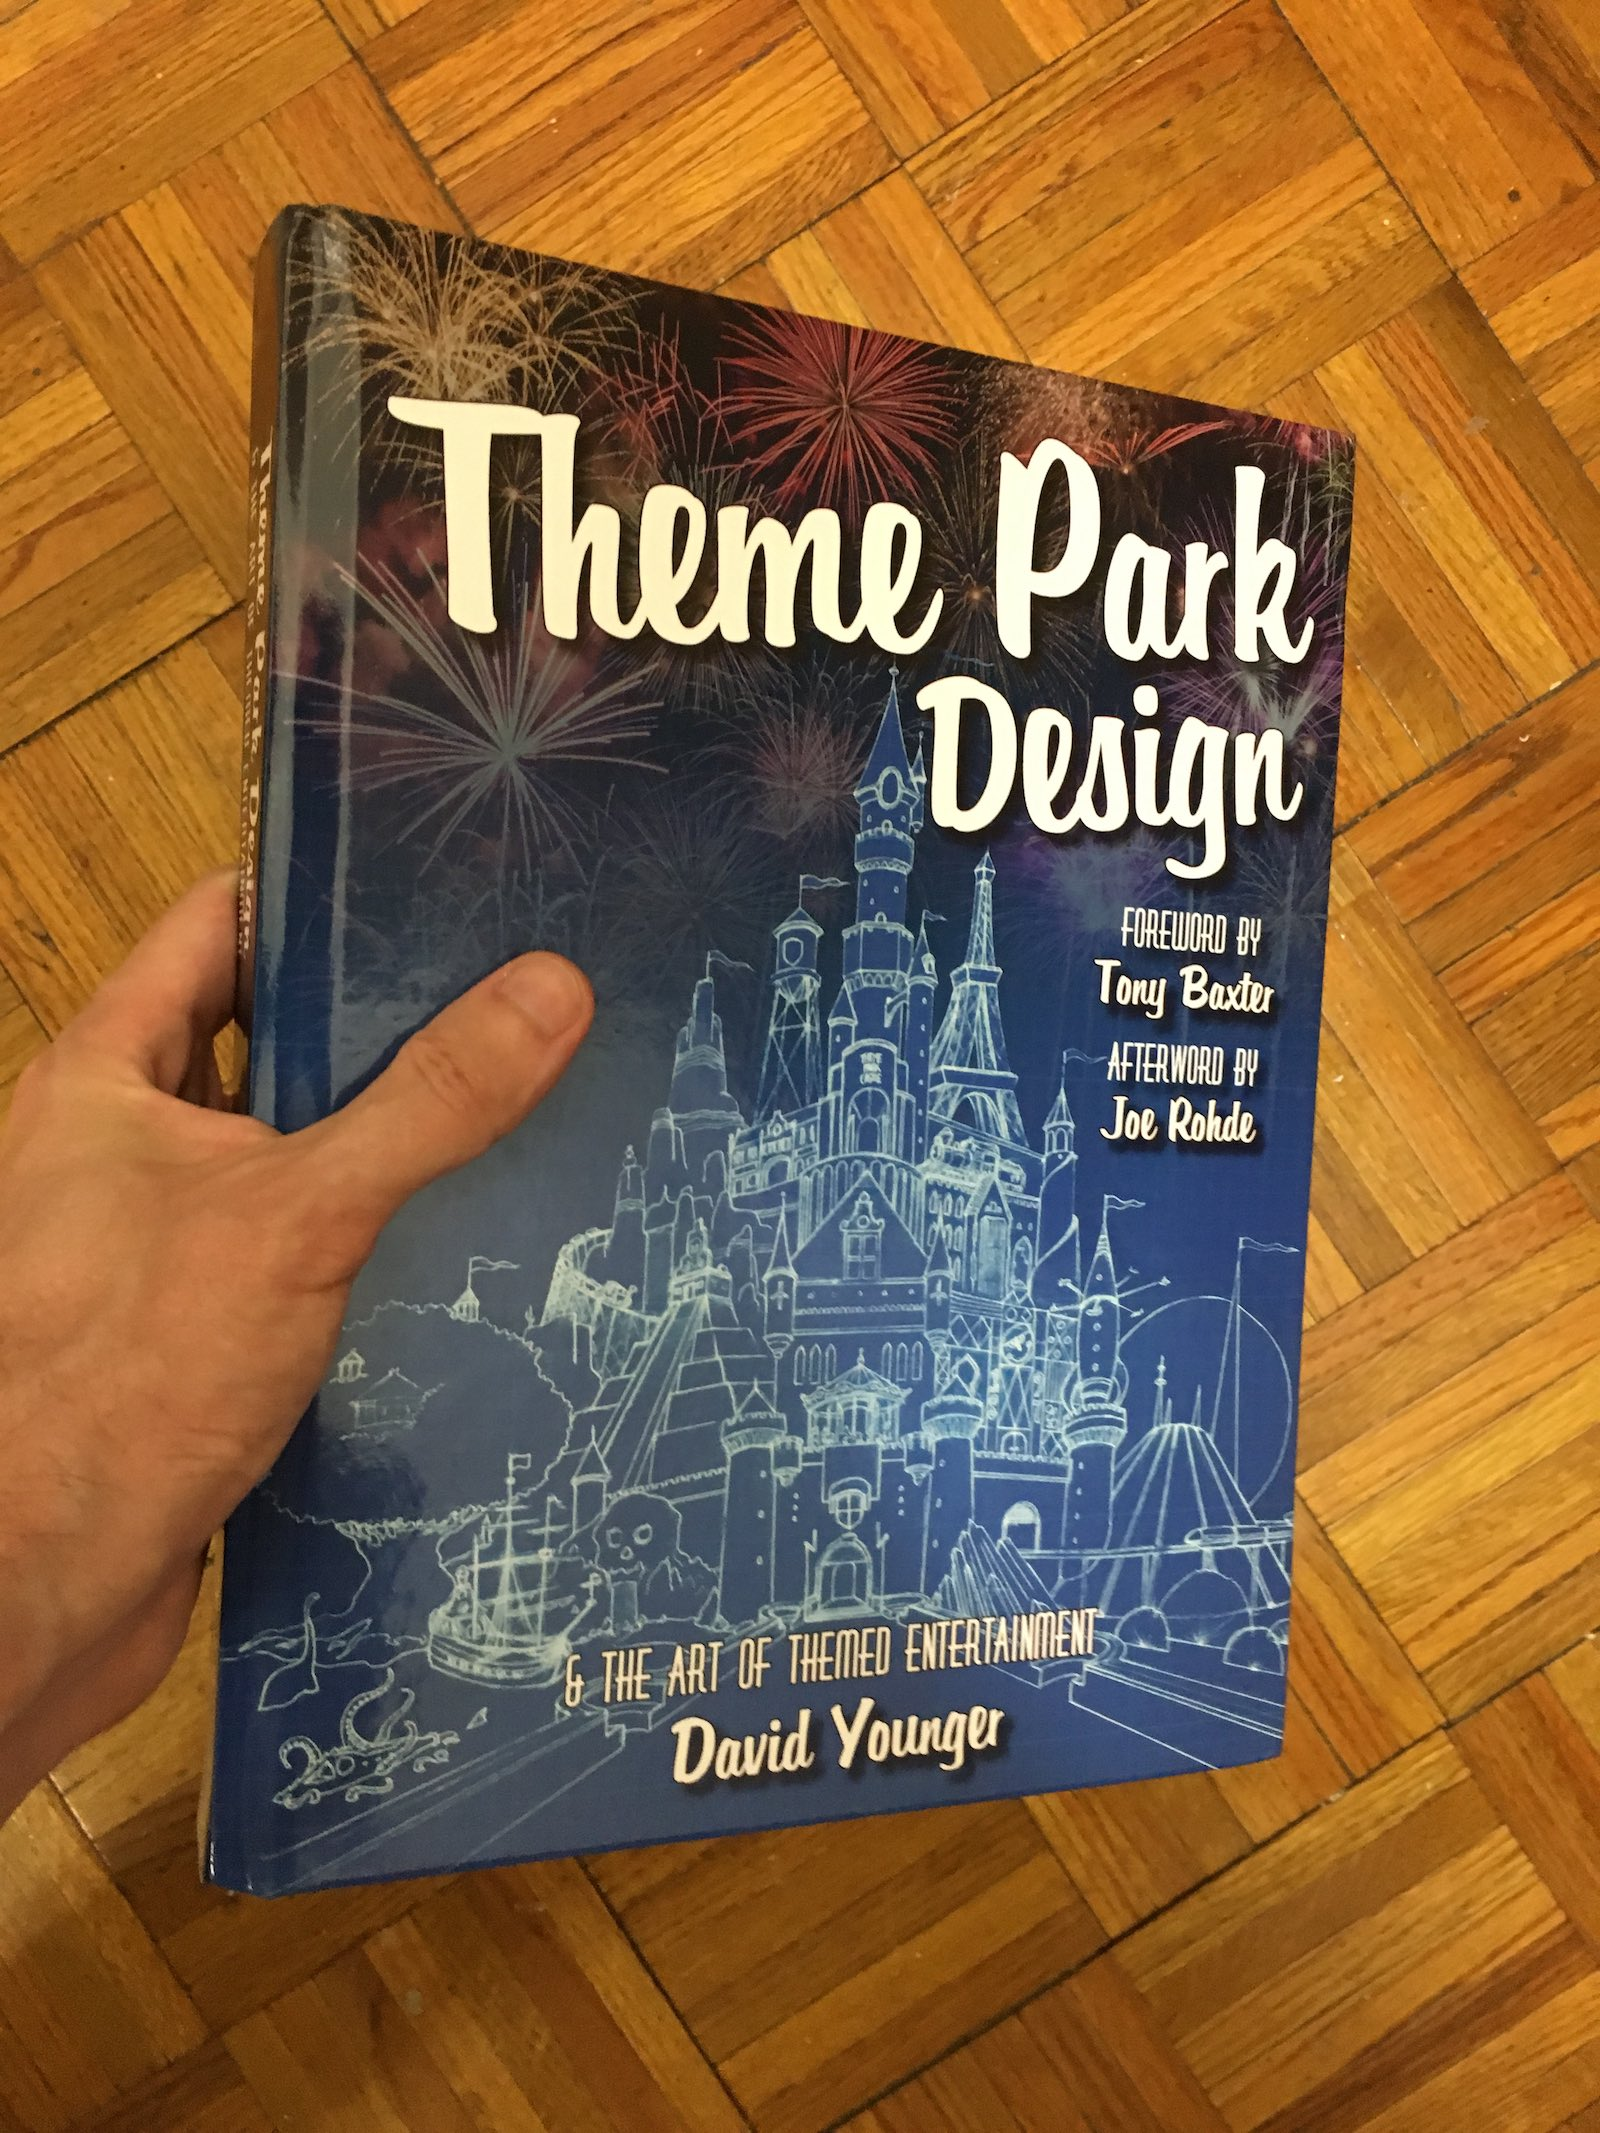 David Younger's Theme Park Design, held in my hand. It's huge.